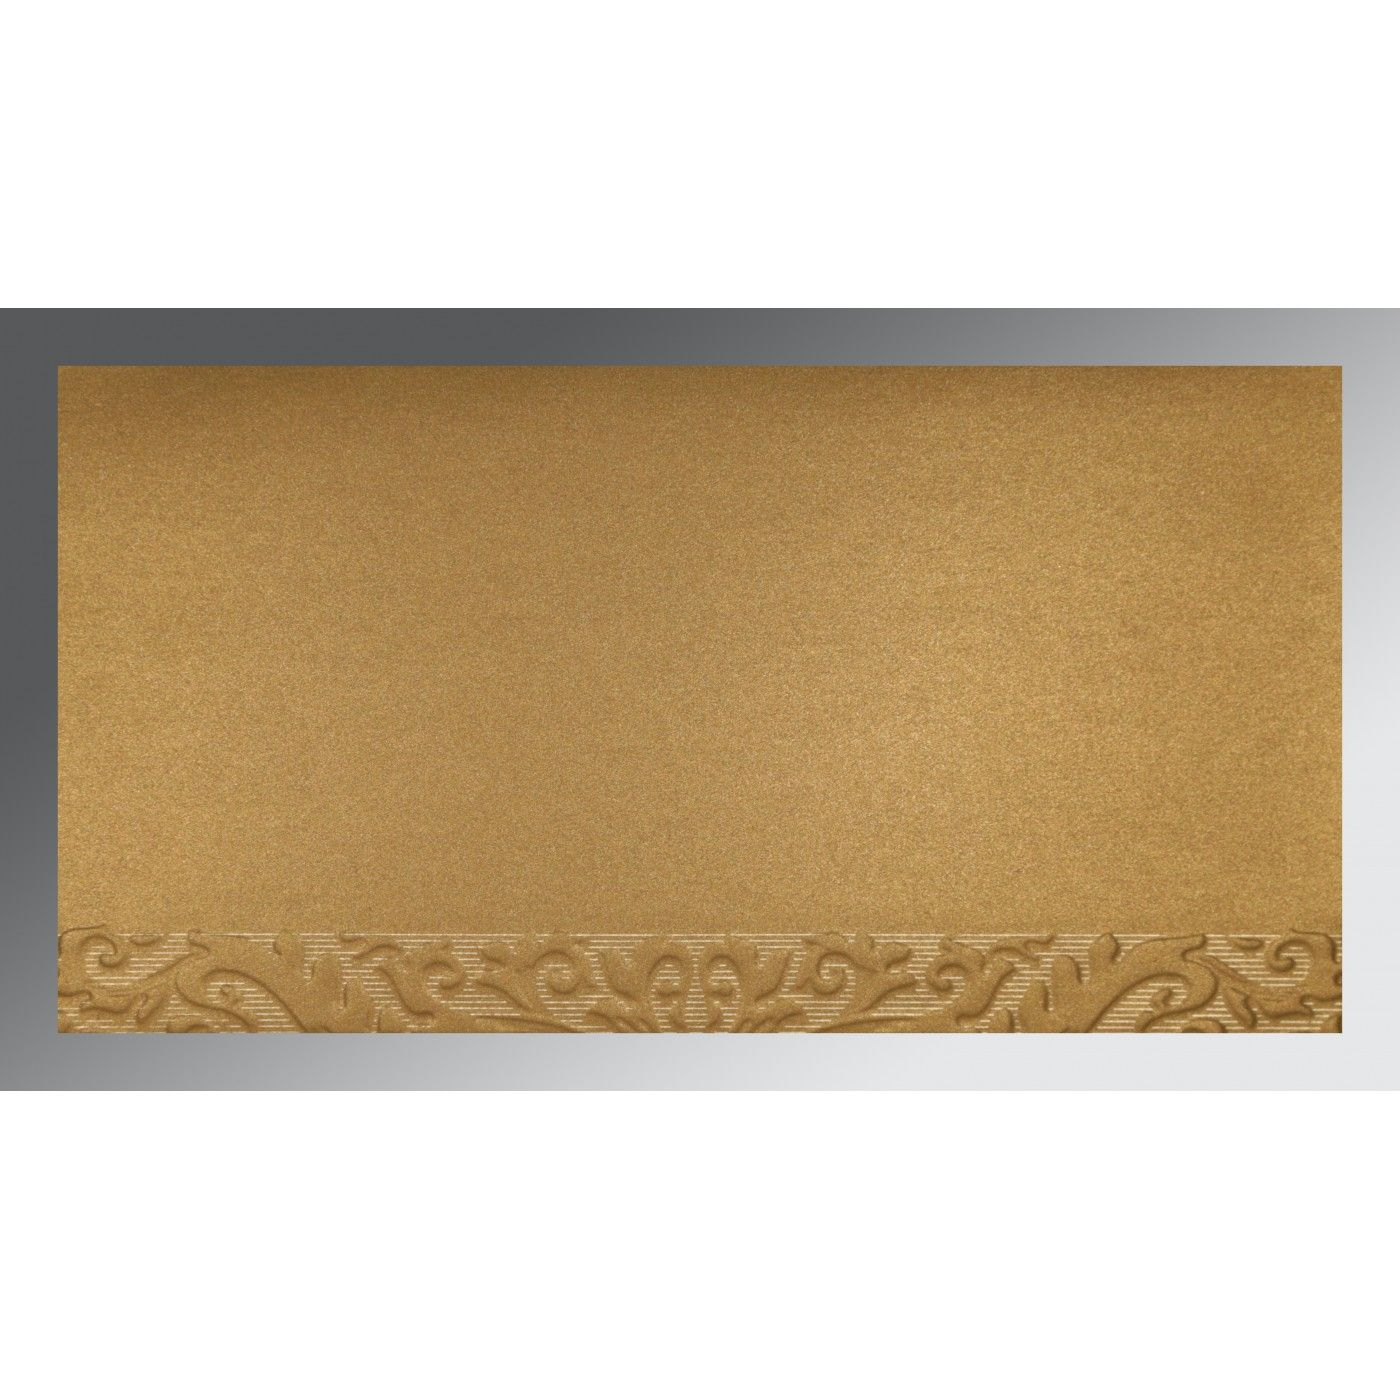 BRICK RED COPPER SHIMMERY FOIL STAMPED WEDDING CARD : CS-1463 - IndianWeddingCards